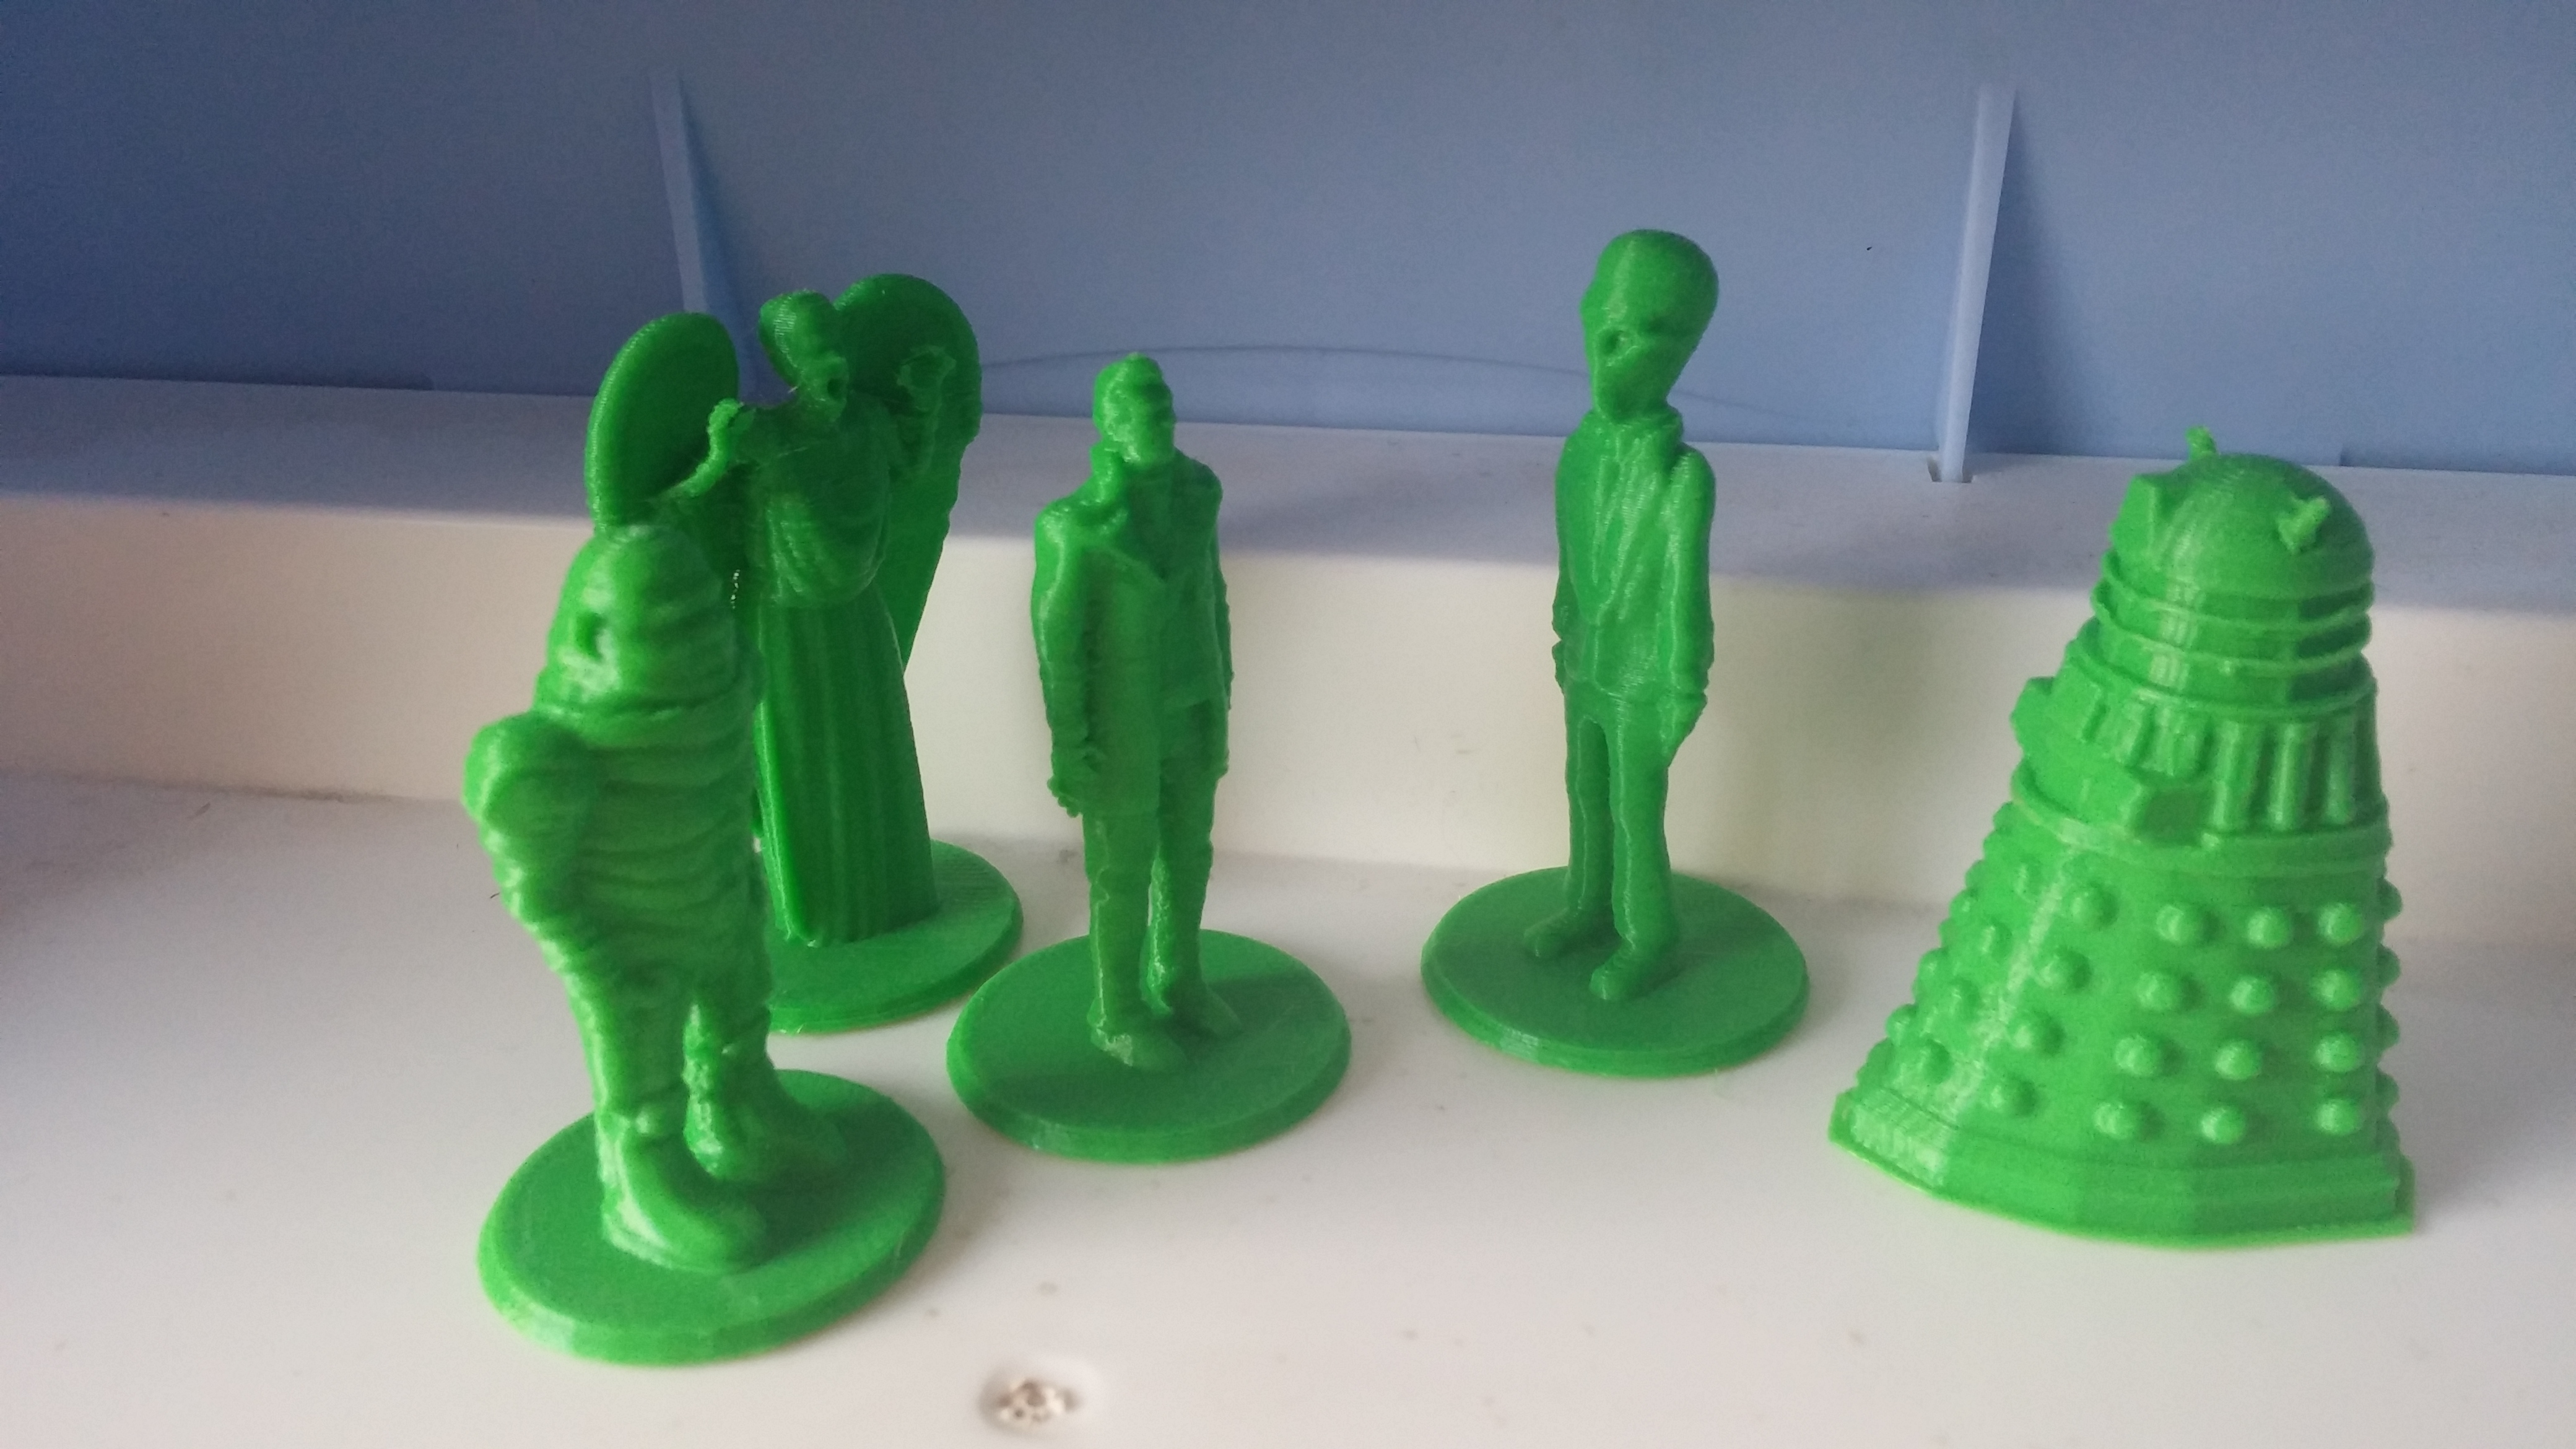 The 7 Best 3D Printers for Miniatures 2020 - By Experts | 2340x4160